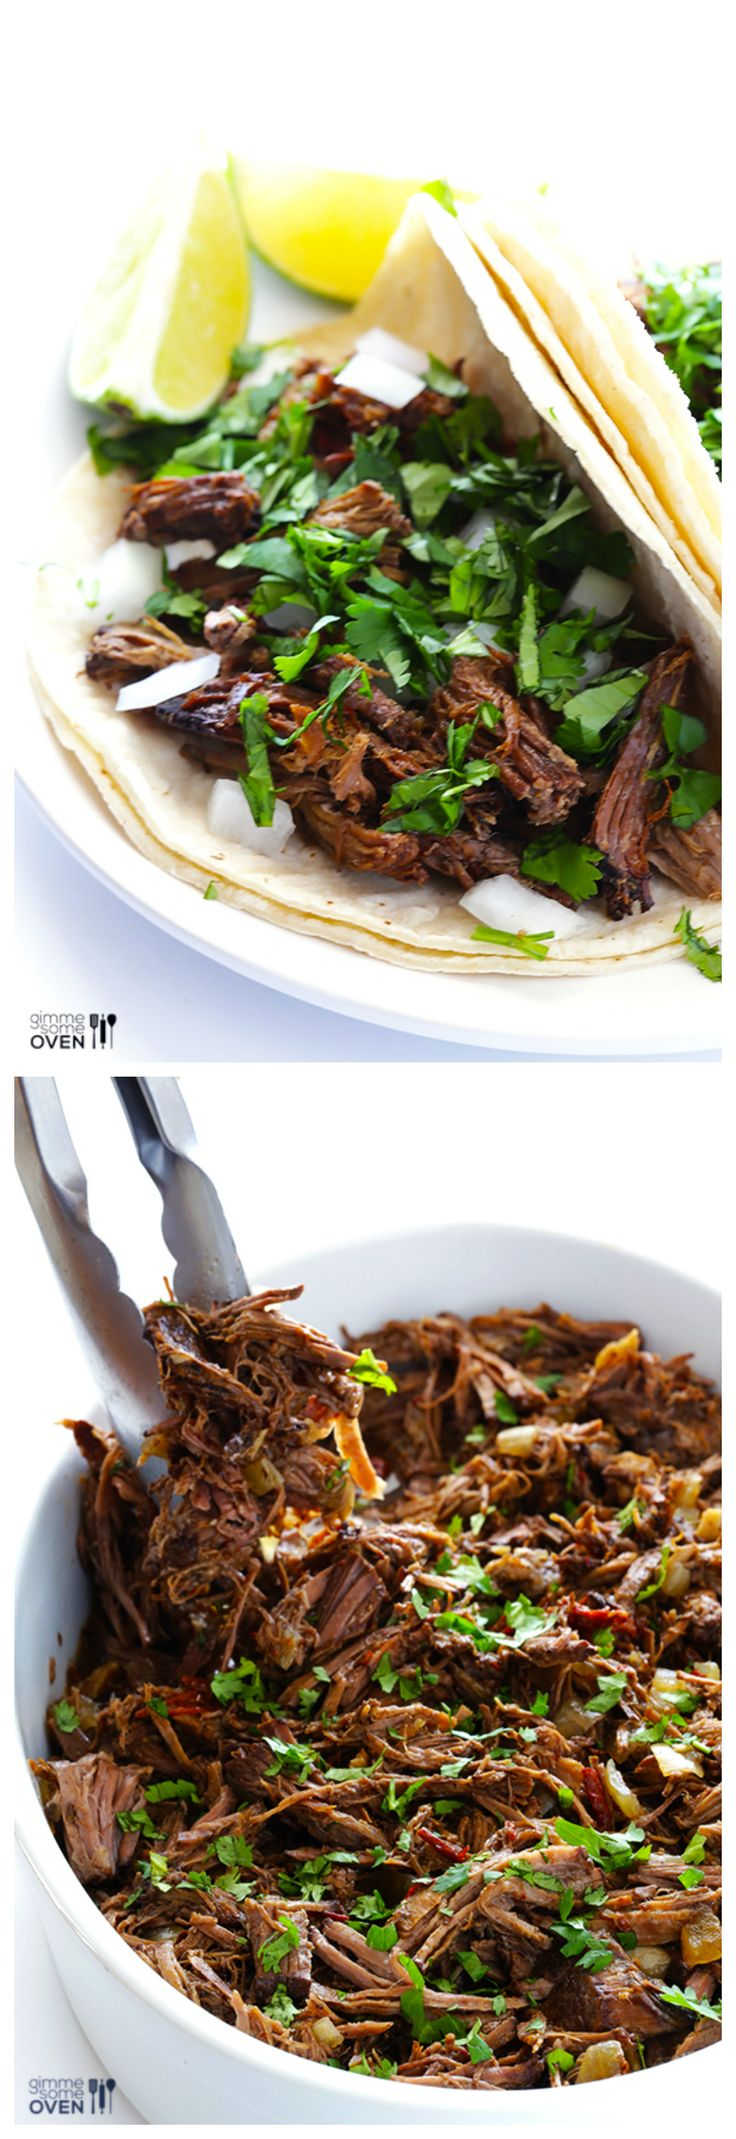 Homemade Barbacoa Beef -- flavorful, tender, so easy to make in the slow cooker, and perfect for tacos, burritos, and more! | gimmesomeoven.com #crockpot #slowcooker